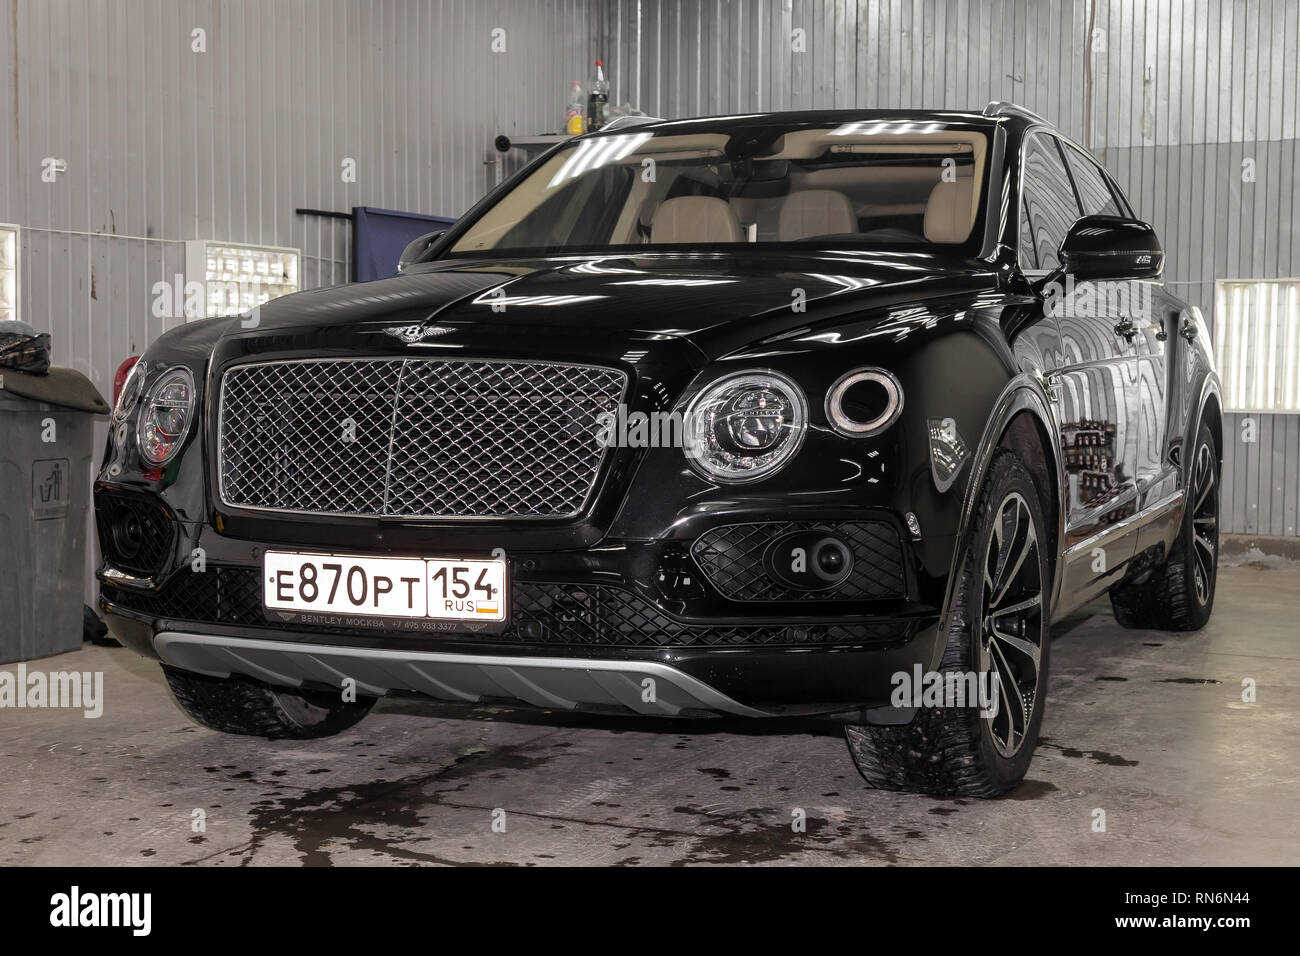 Novosibirsk Russia 08 01 18 Front View Of Luxury Very Expensive New Black Bentley Bentayga Car Stands In The Washing Box Waiting For Repair In Aut Stock Photo Alamy